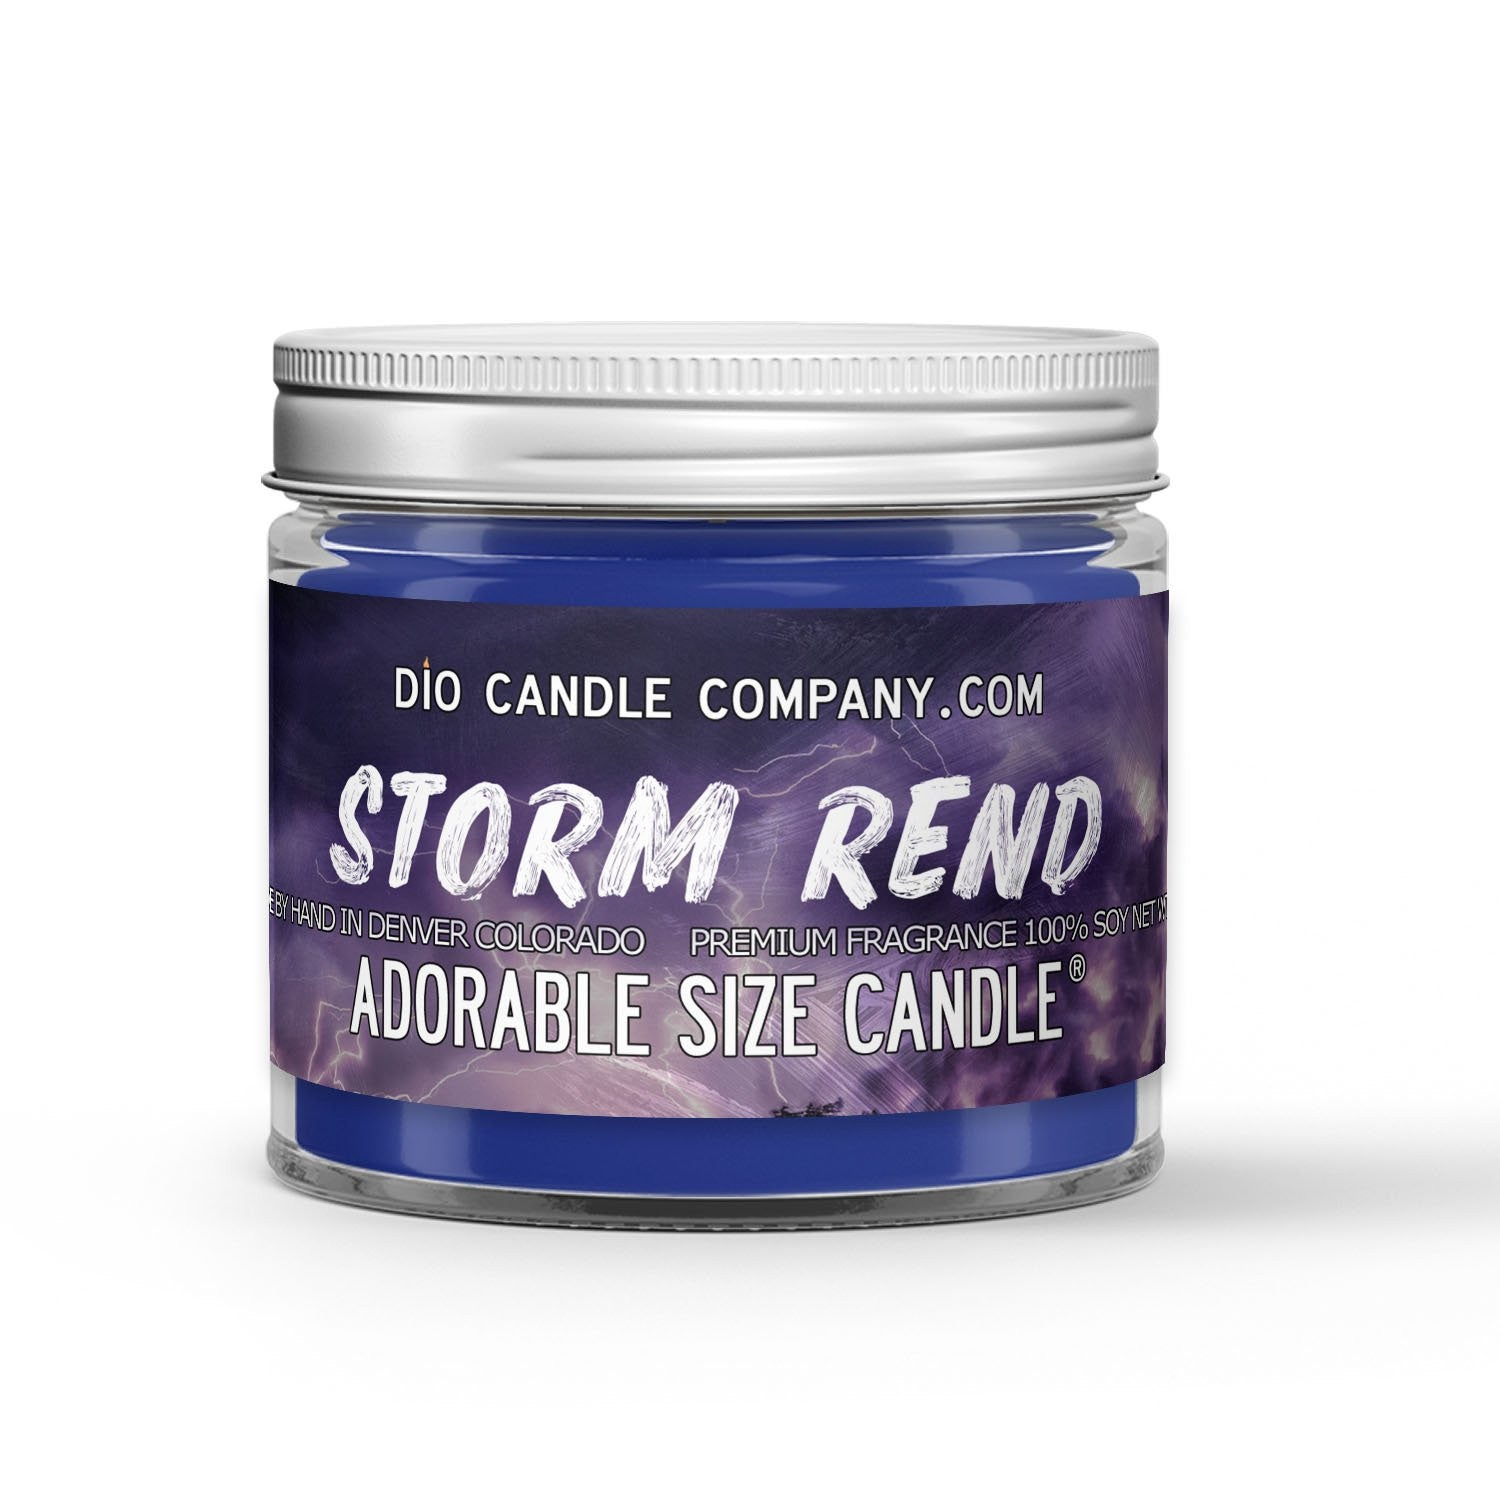 Storm Rend Candle - Storm - Mahogany - Sea Salt - 1oz Adorable Size Candle® - Dio Candle Company